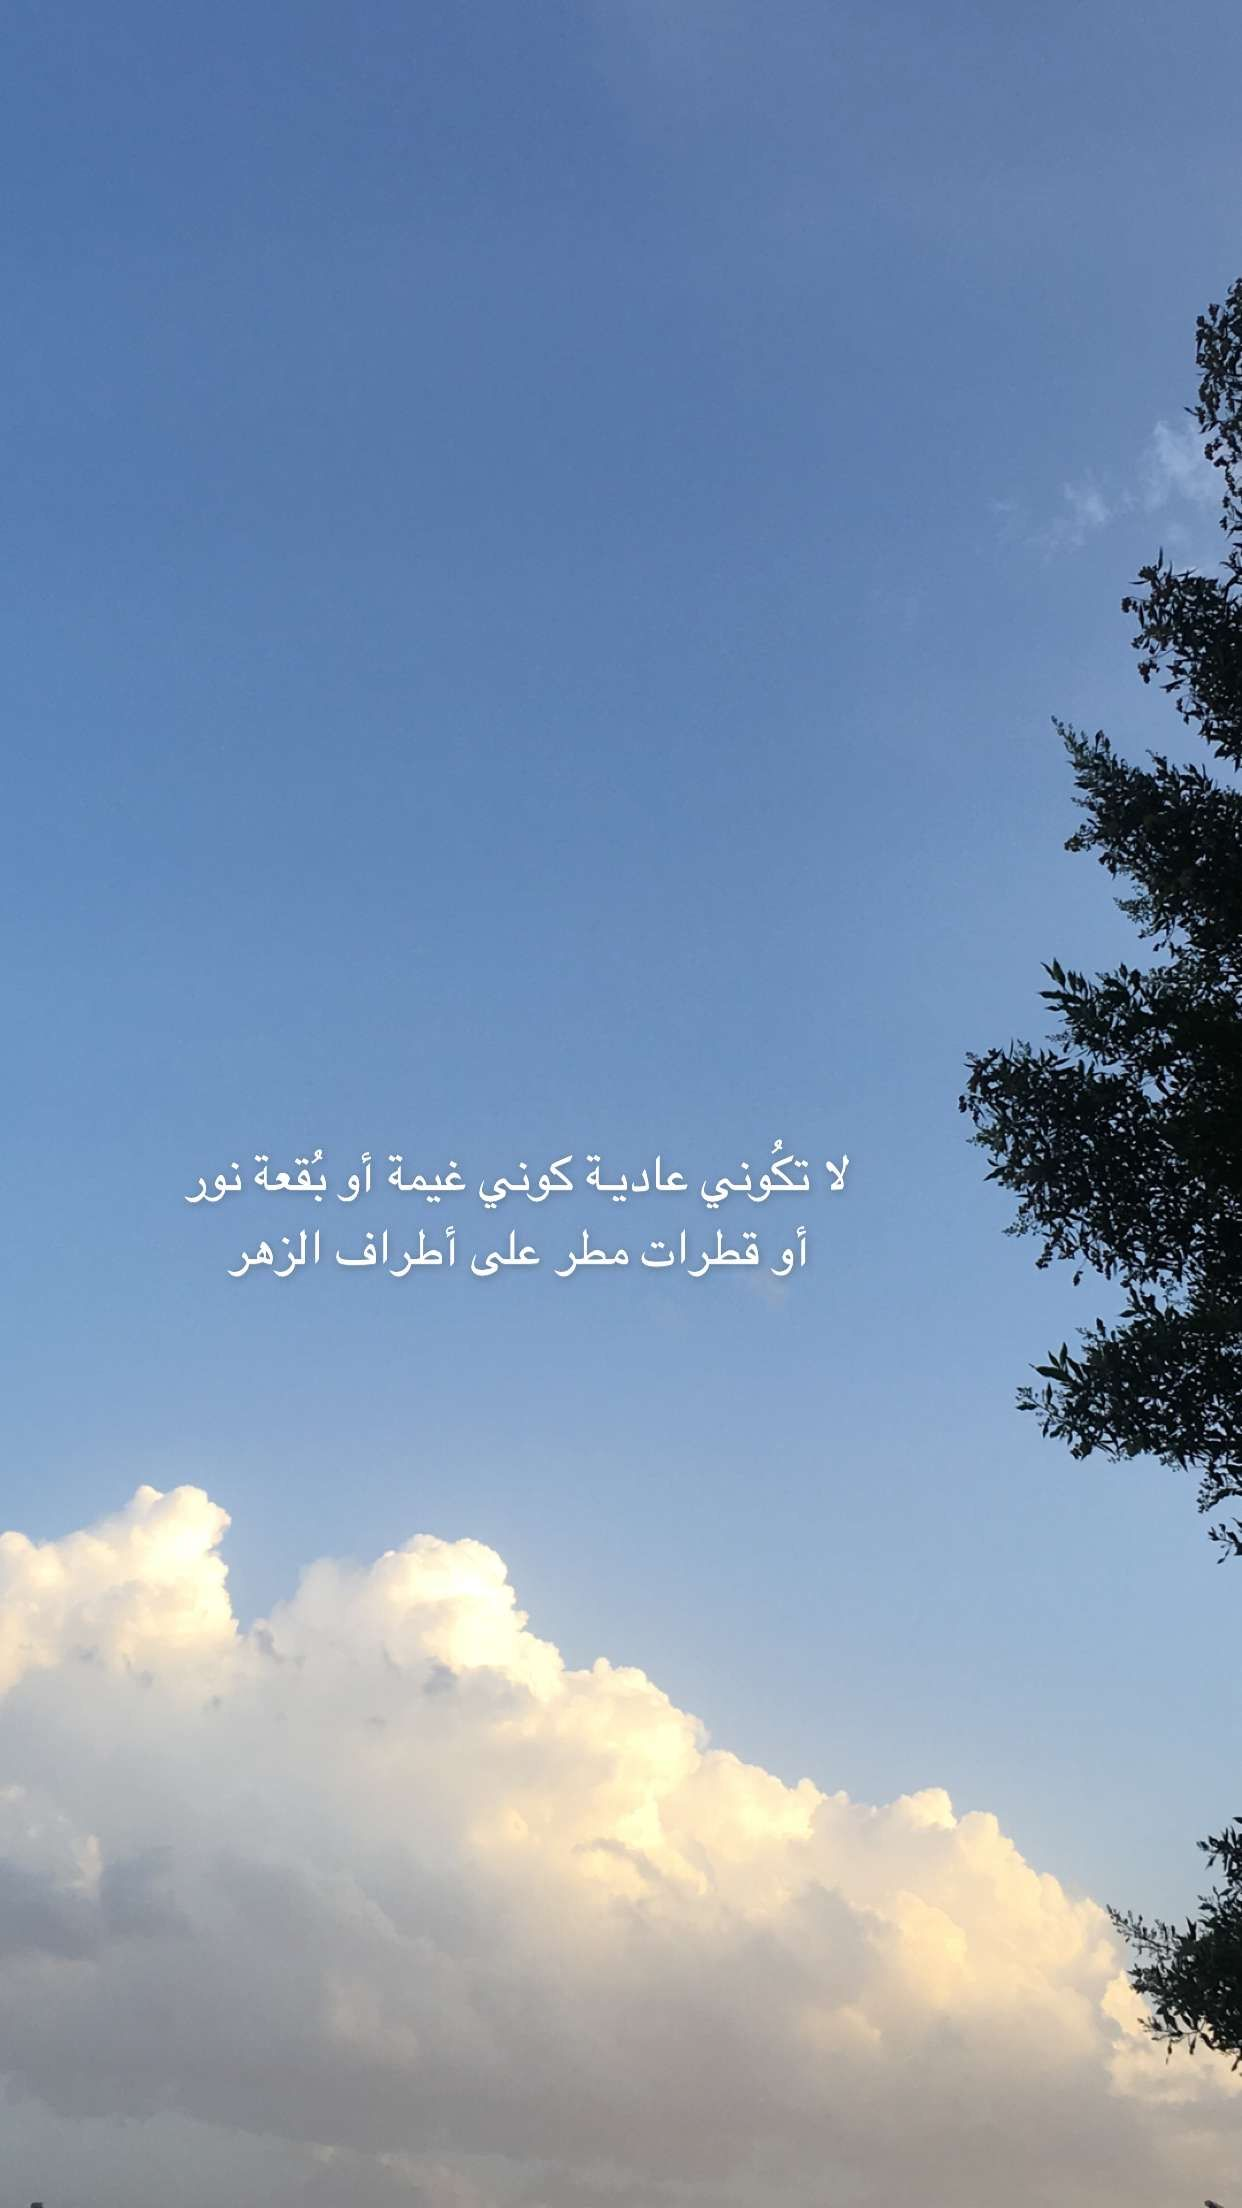 Pin By Hur On سنابات Book Quotes Scenery Clouds